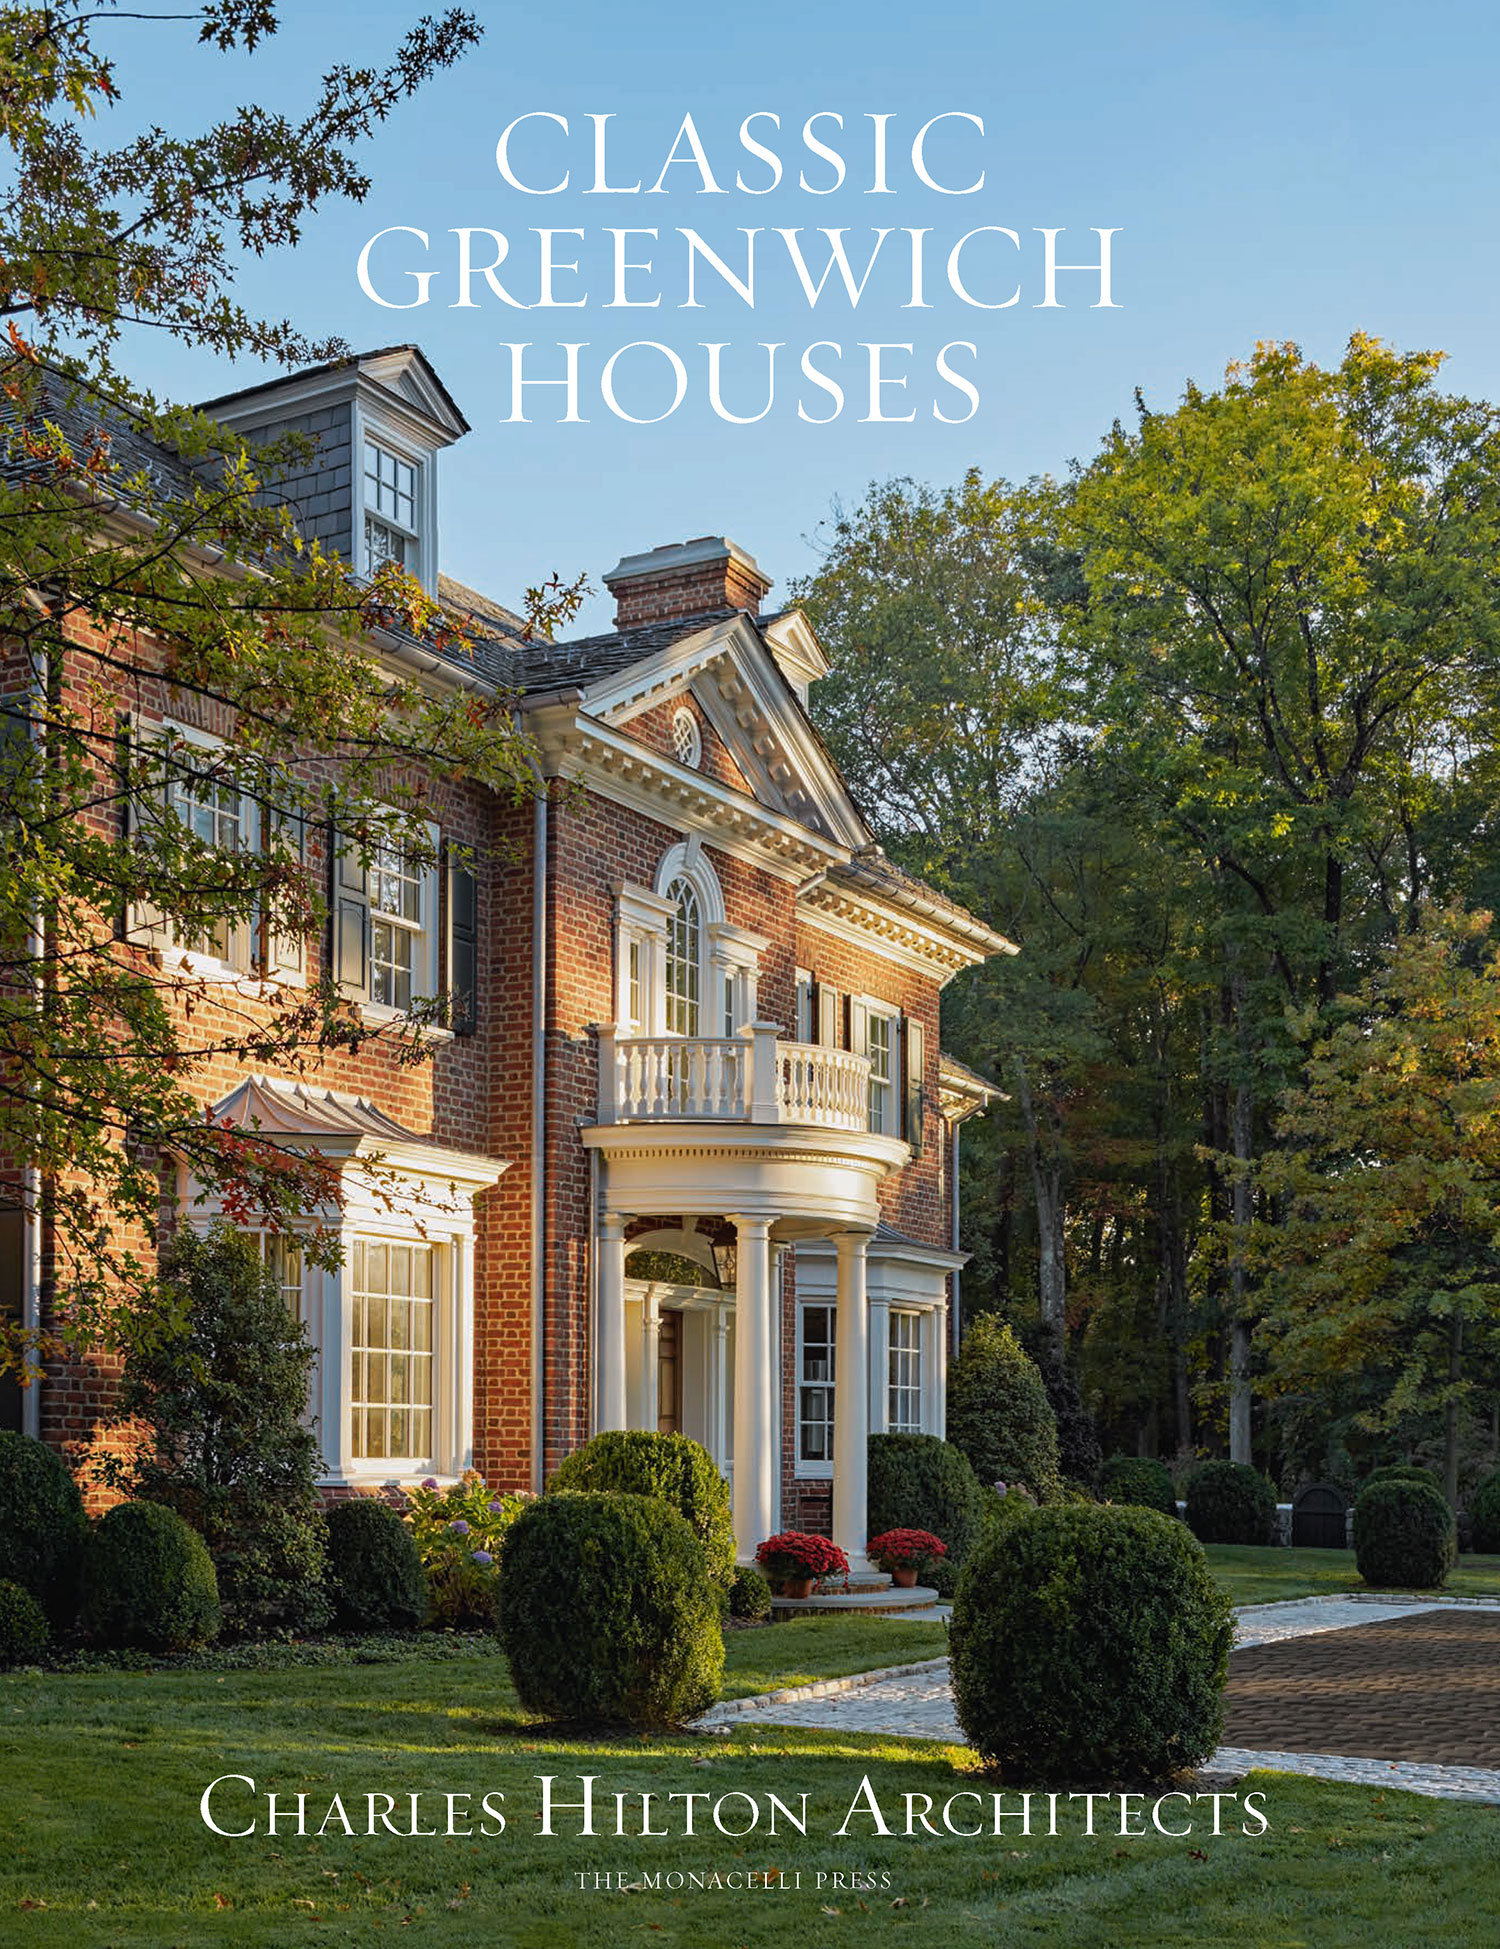 classic greenwich houses book cover